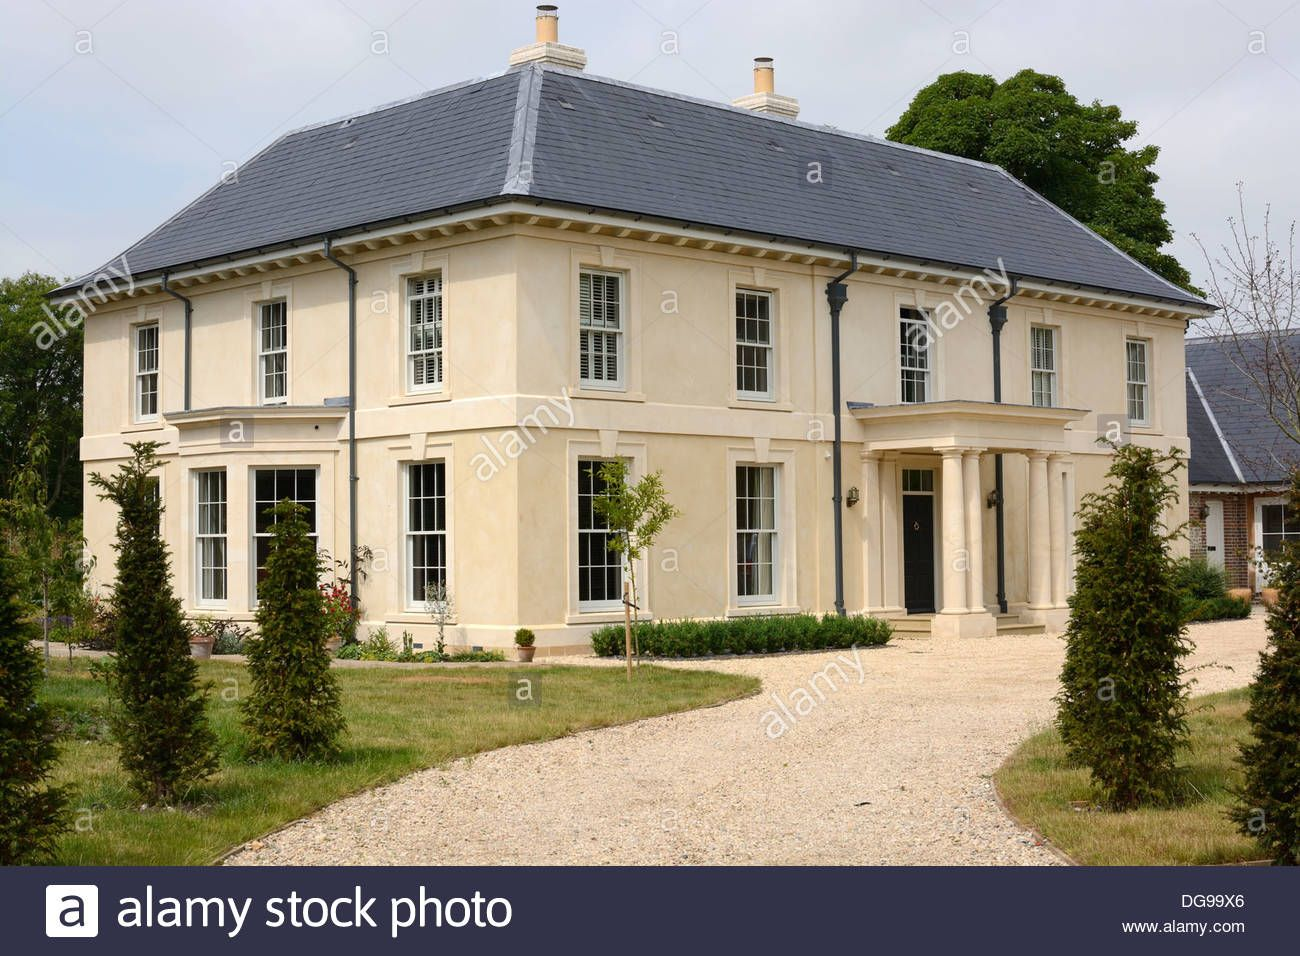 Download this stock image new build large georgian style for New homes to build